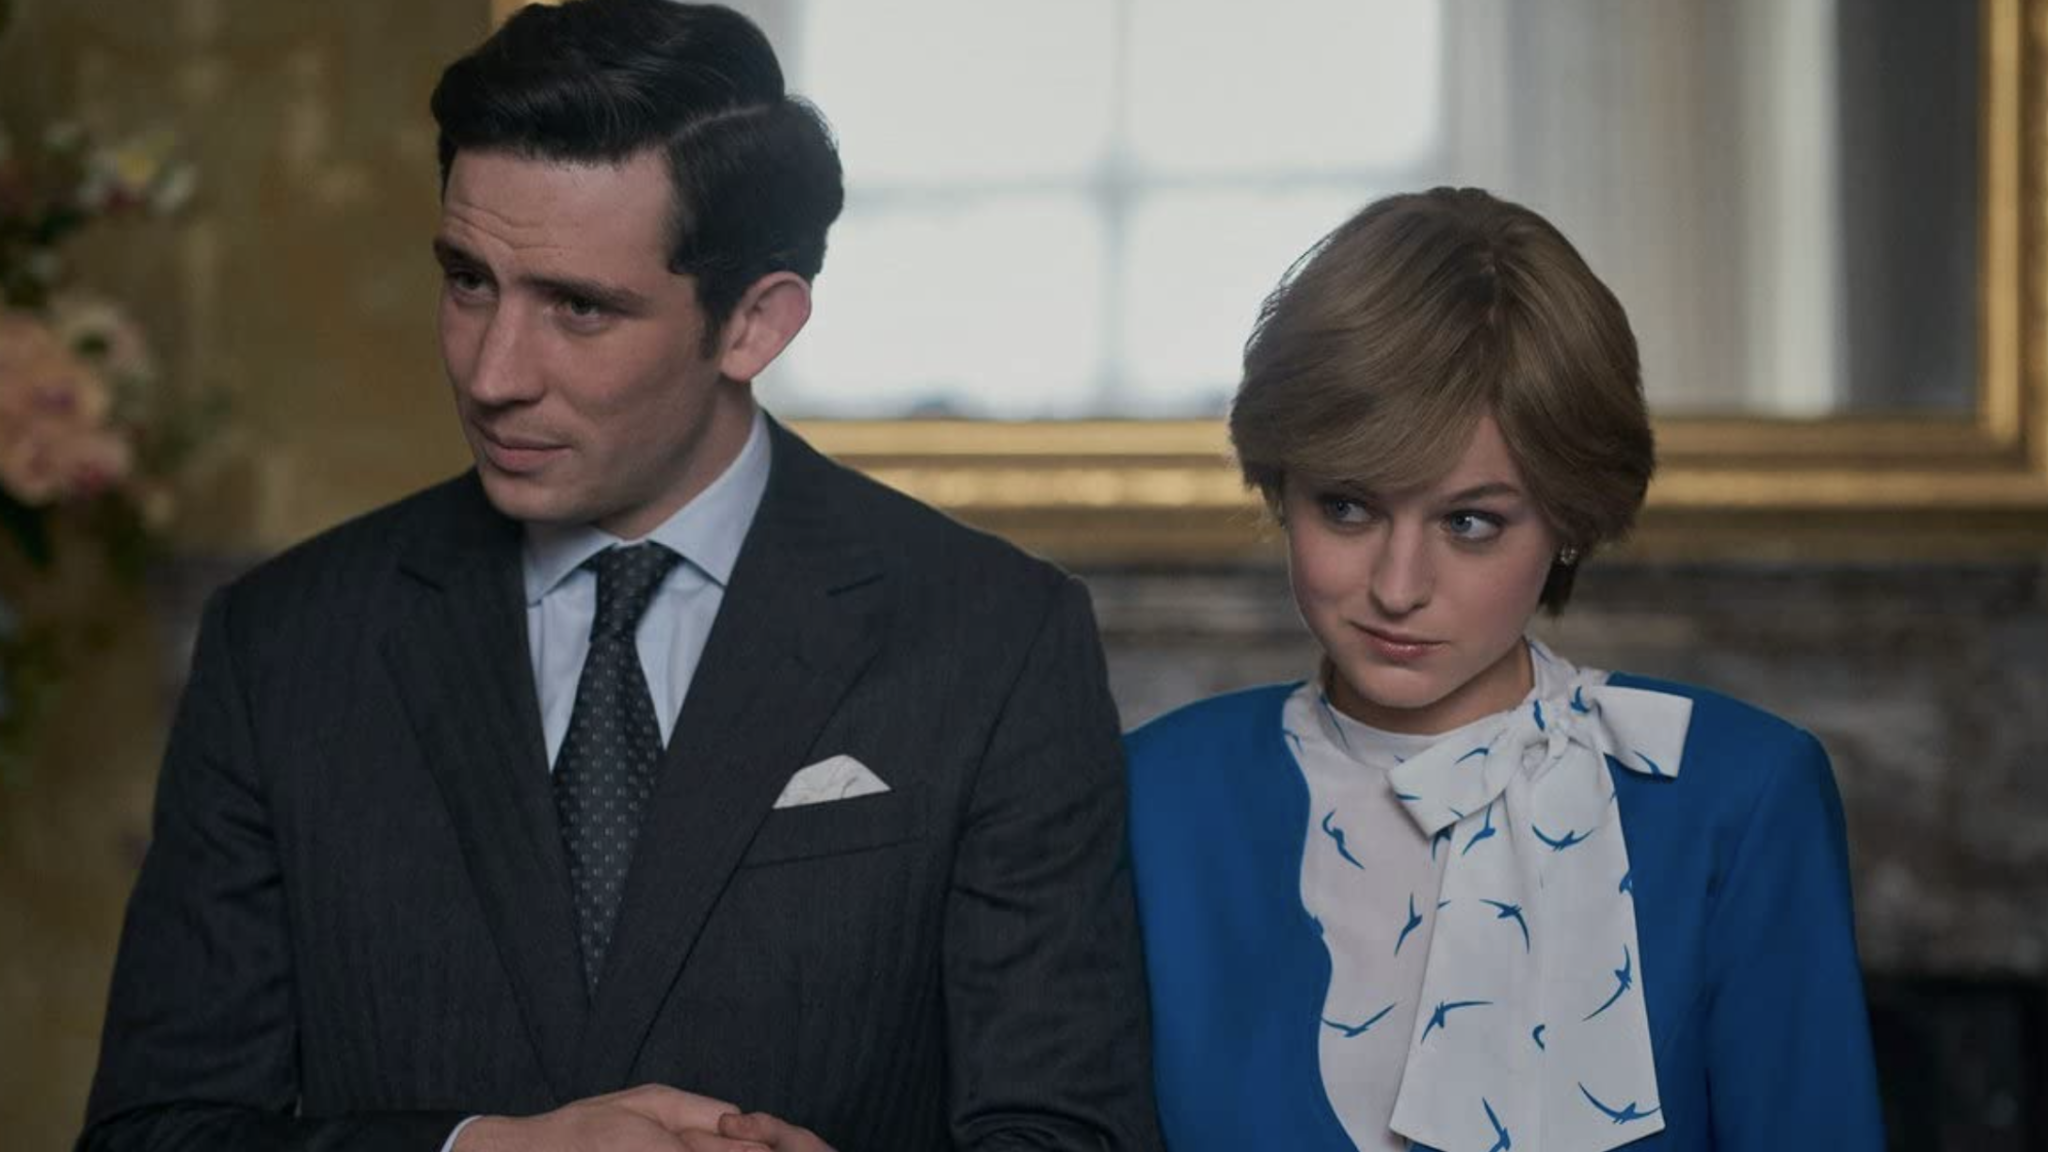 20 Things We Learned About the Royal Family After Watching 'The Crown'